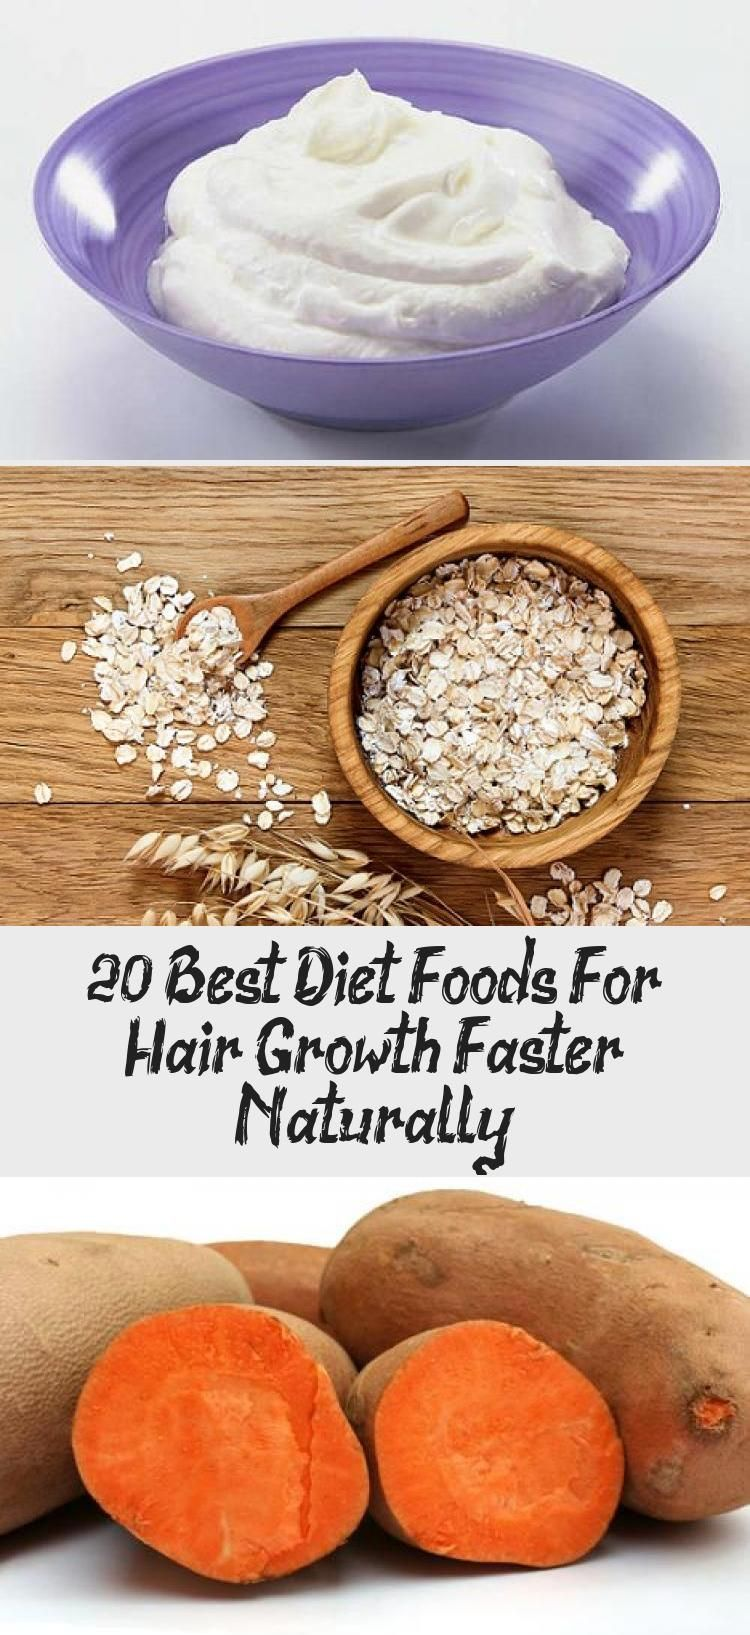 Vitamins for Hair Growth} and 20 Best Diet Foods For Hair Growth Faster Naturally. #Quickhairgrowth #AppleCiderVinegarhairgrowth #hairgrowthChart #Rapidhairgrowth #hairgrowthRemedies